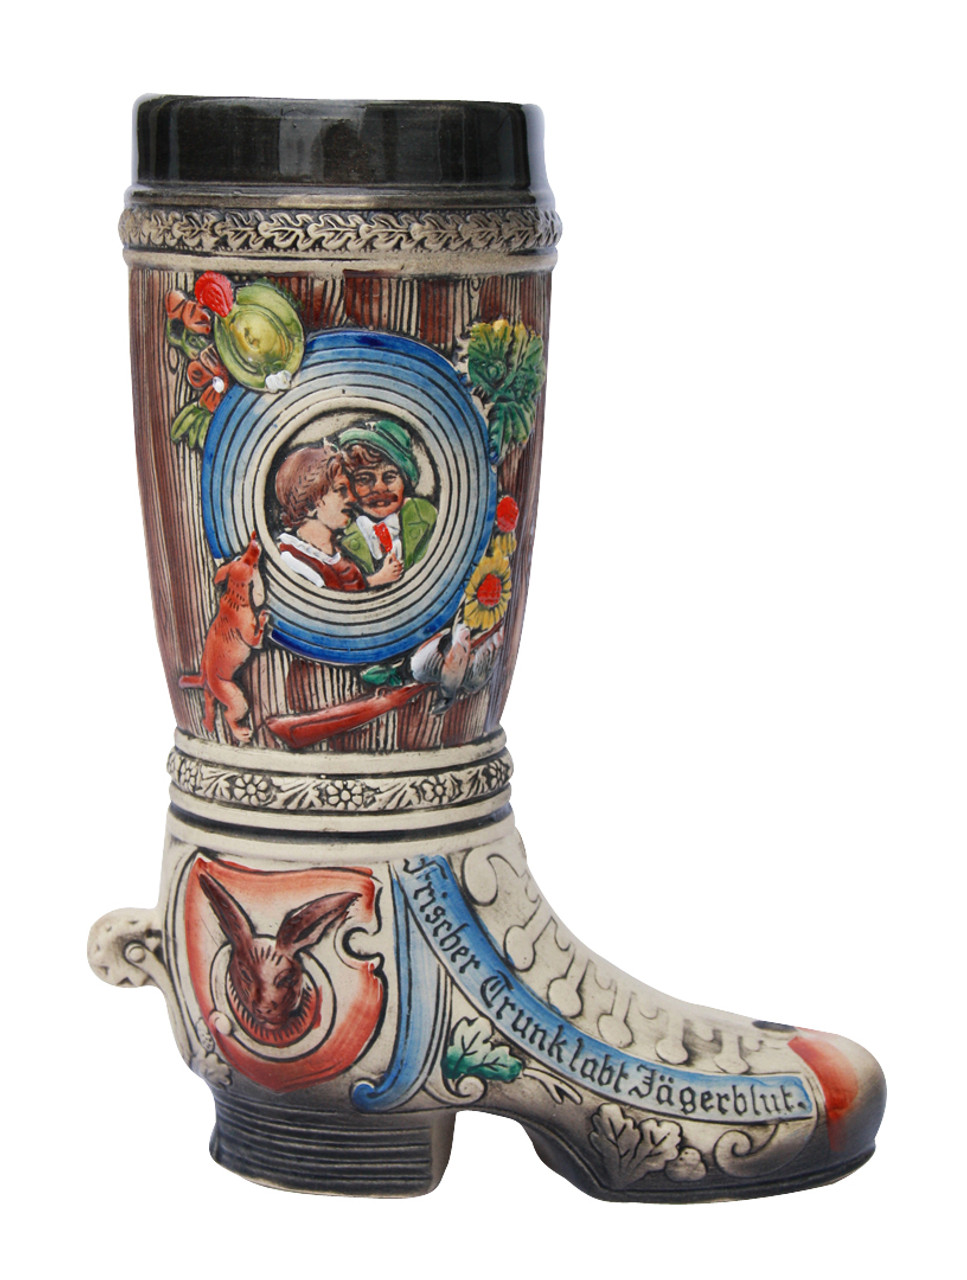 1 Liter Ceramic Beer Boot with Hunting Theme